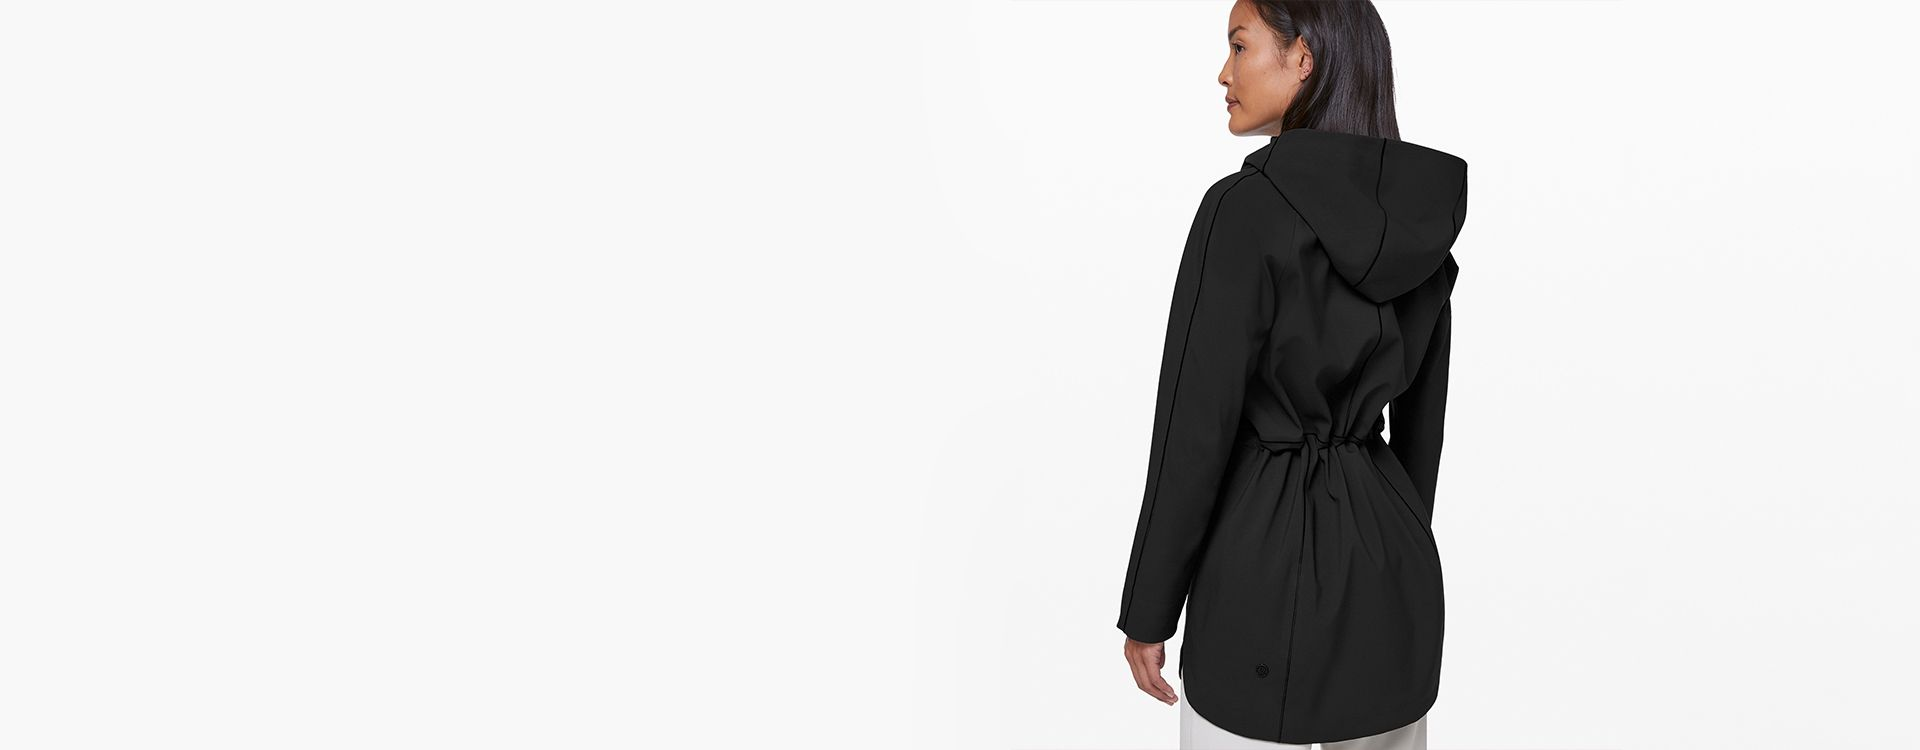 65aa6e12 All JacketsClimate control for your closet with outerwear for any weather.